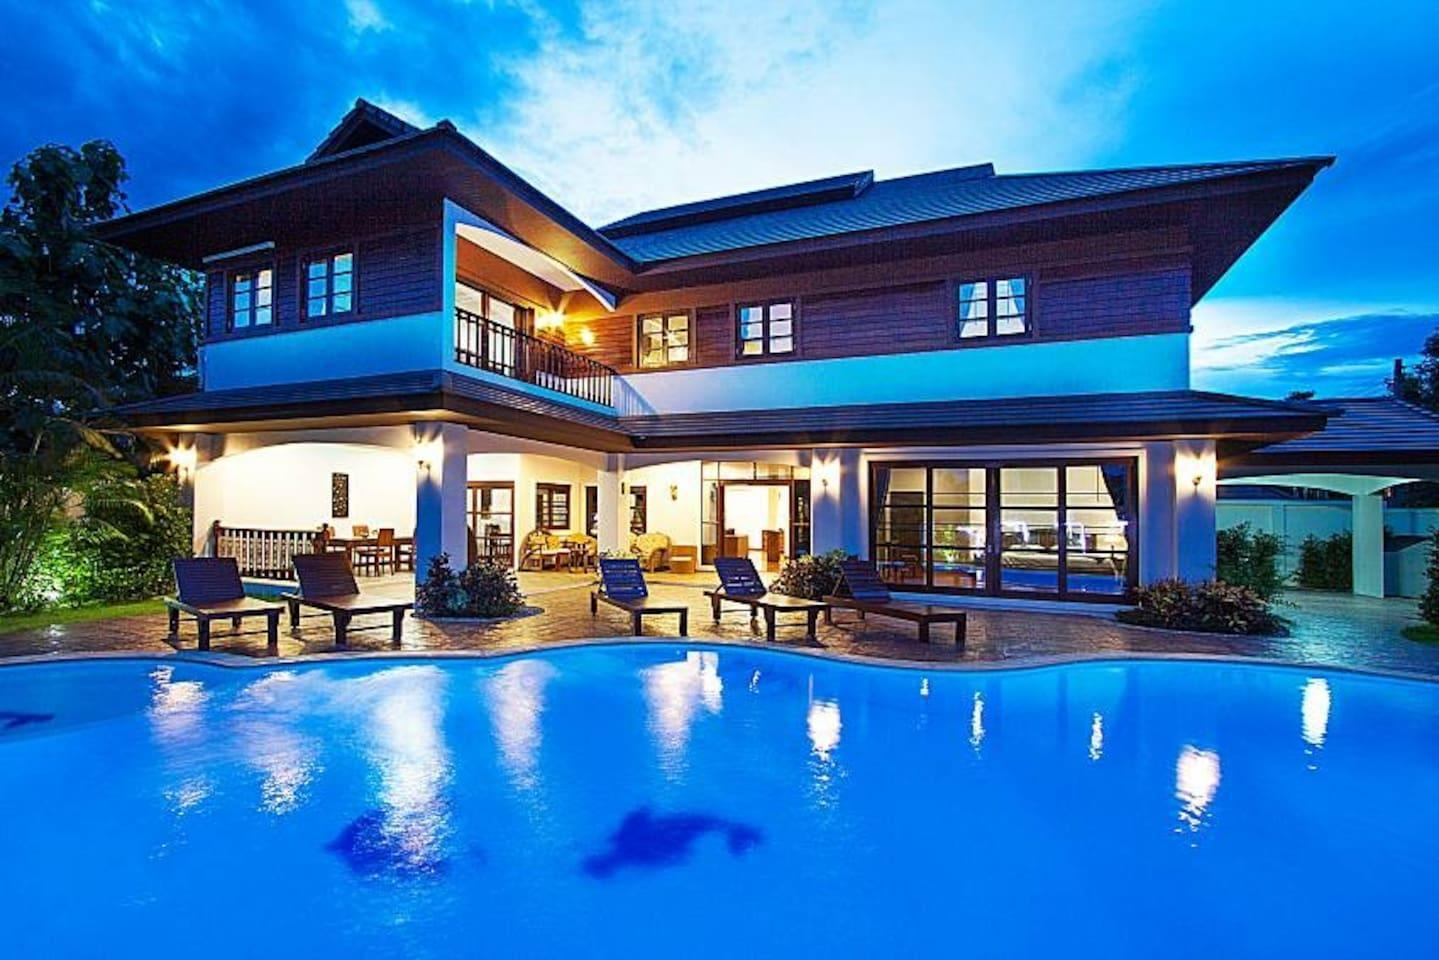 Lanna Villa 7 Bed Sleeps 14 Pool in Chiang Mai Lanna Villa 7 Bed Sleeps 14 Pool in Chiang Mai